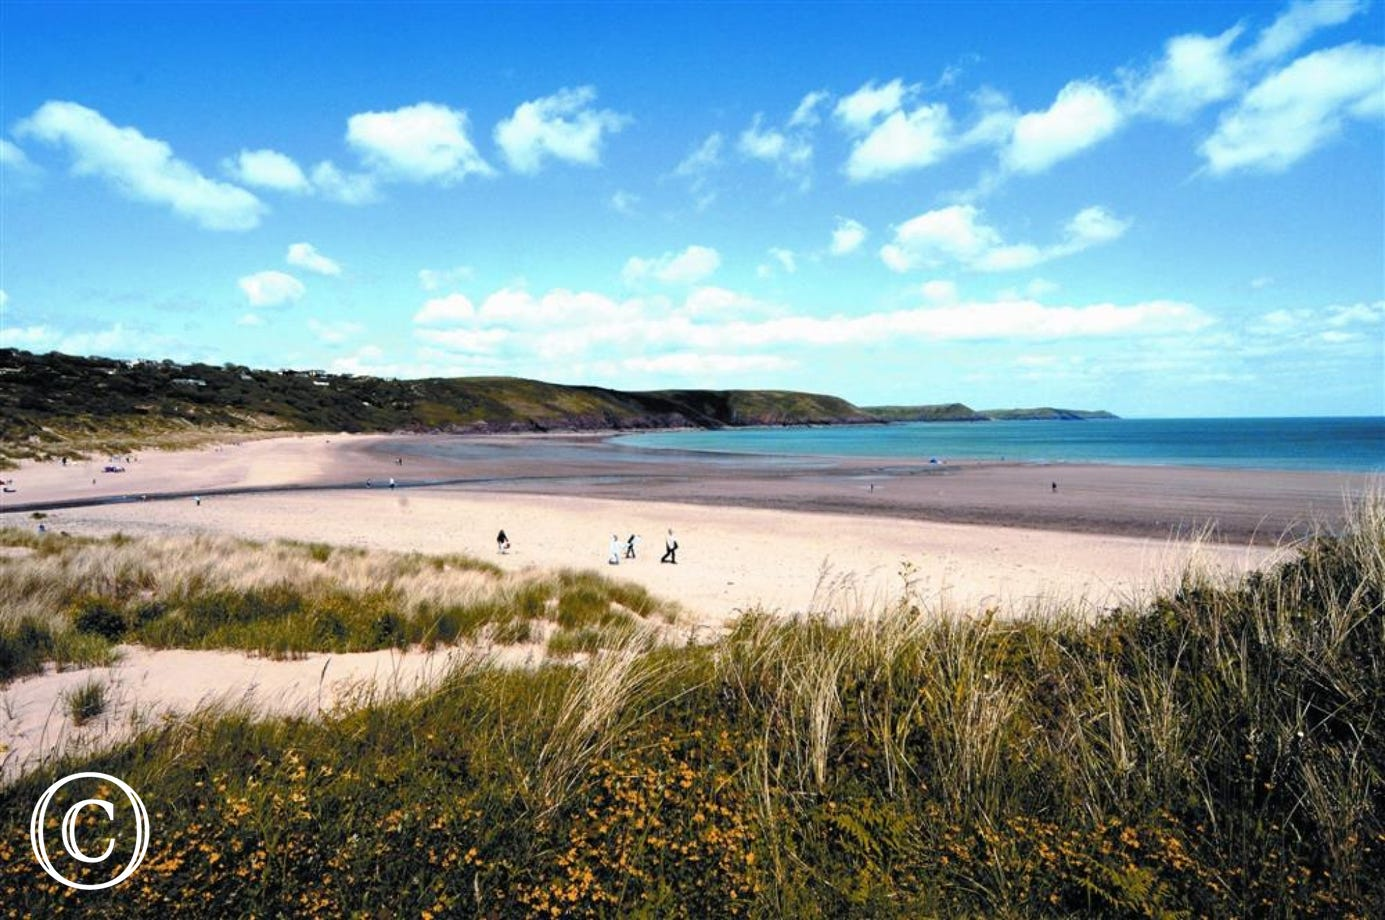 A short car journey will take you to Freshwater East